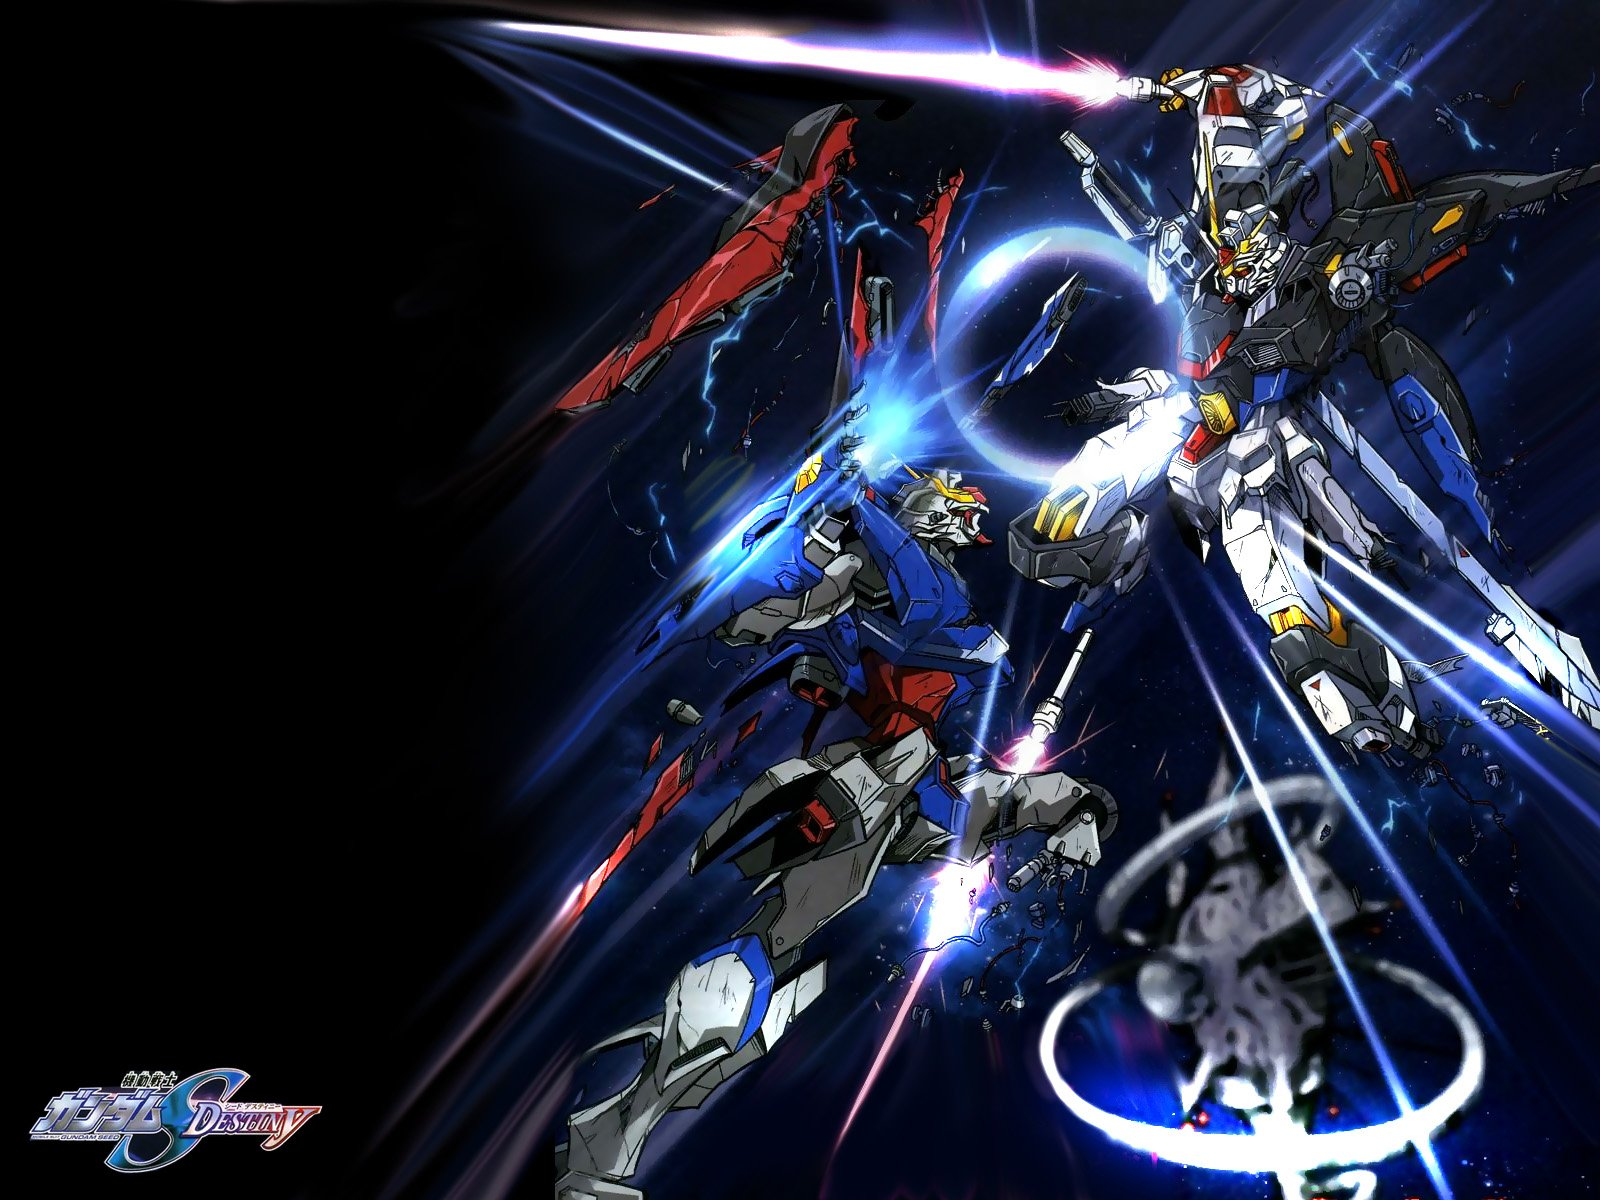 Gundam SEED Destiny Wallpapers   Gundam Kits Collection 1600x1200